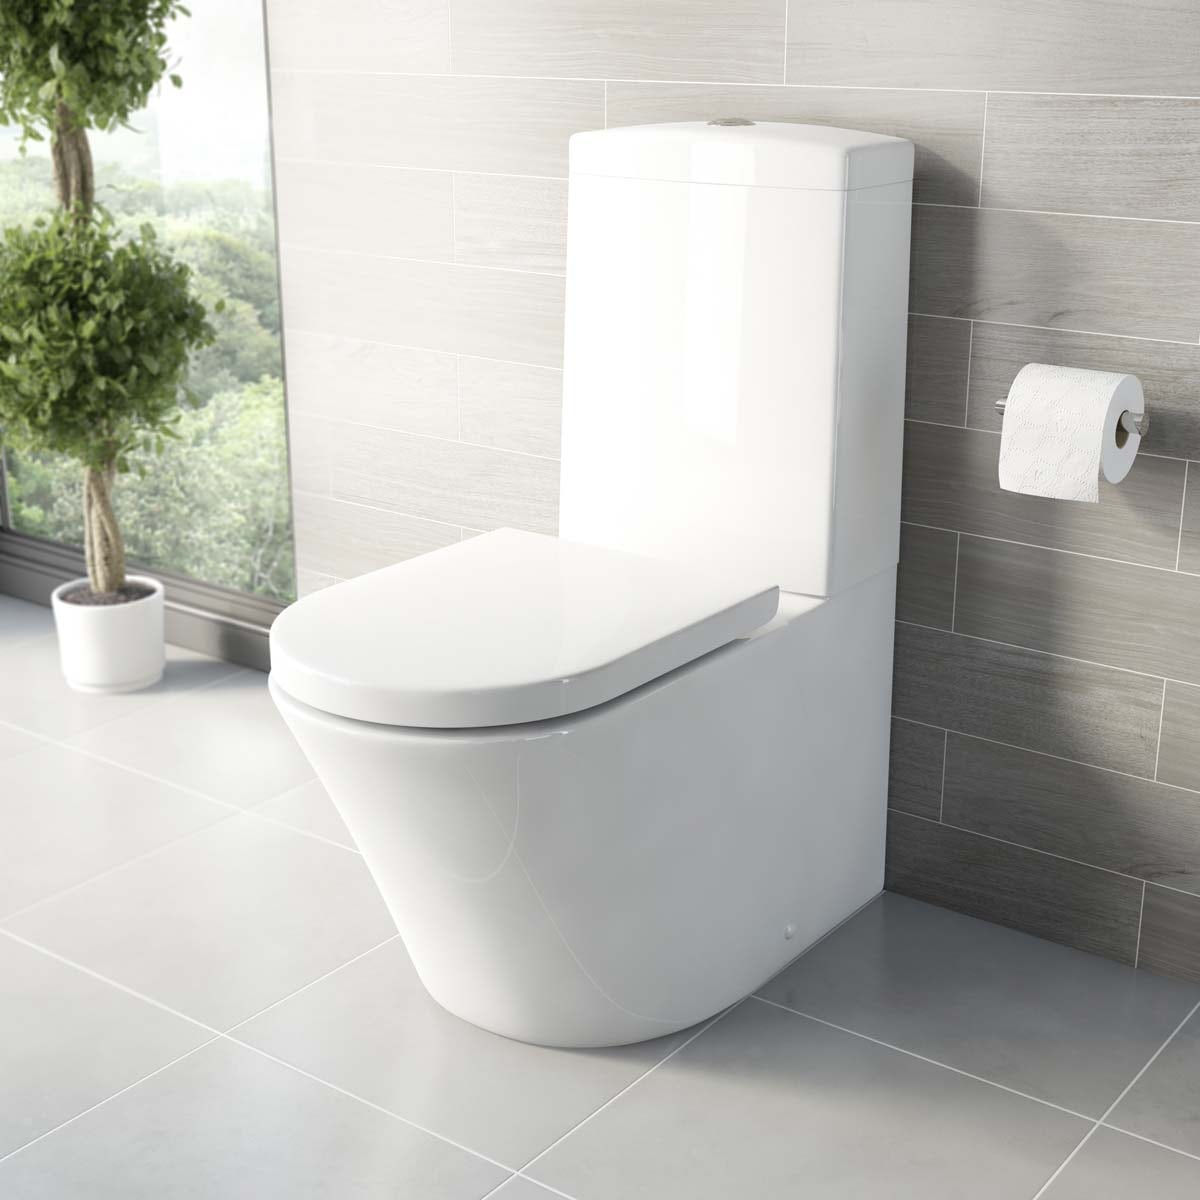 mode arte close coupled toilet with luxury soft close. Black Bedroom Furniture Sets. Home Design Ideas